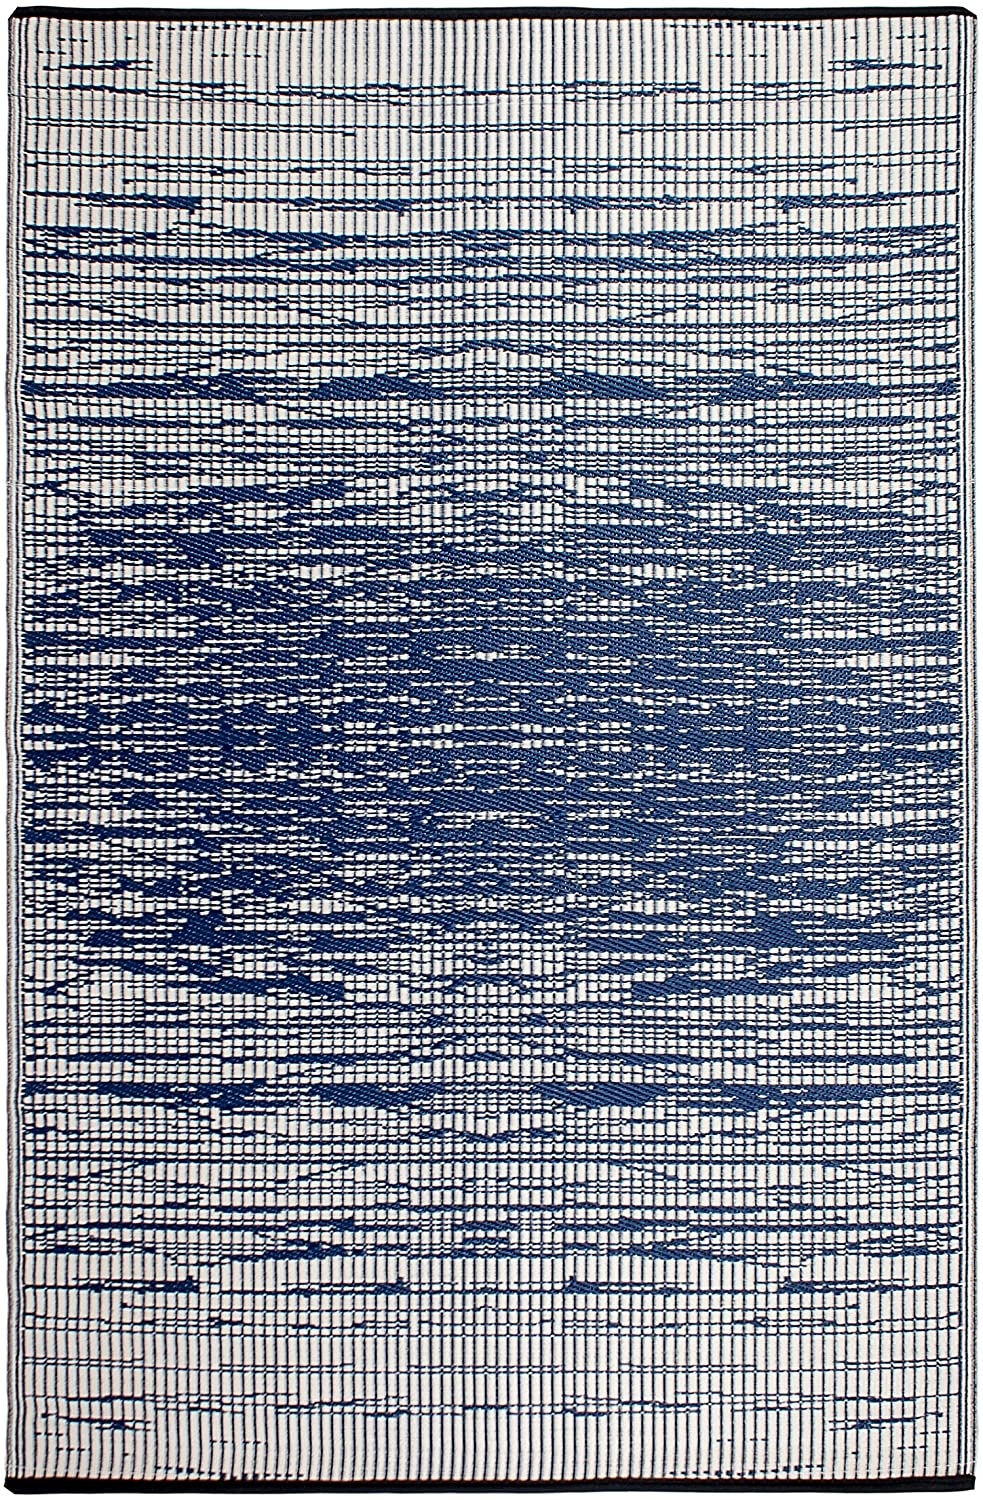 Fab Habitat Reversible Rugs - Indoor or Outdoor Use - Stain Resistant, Easy to Clean Weather Resistant Floor Mats - Brooklyn - Blue (4' x 6')